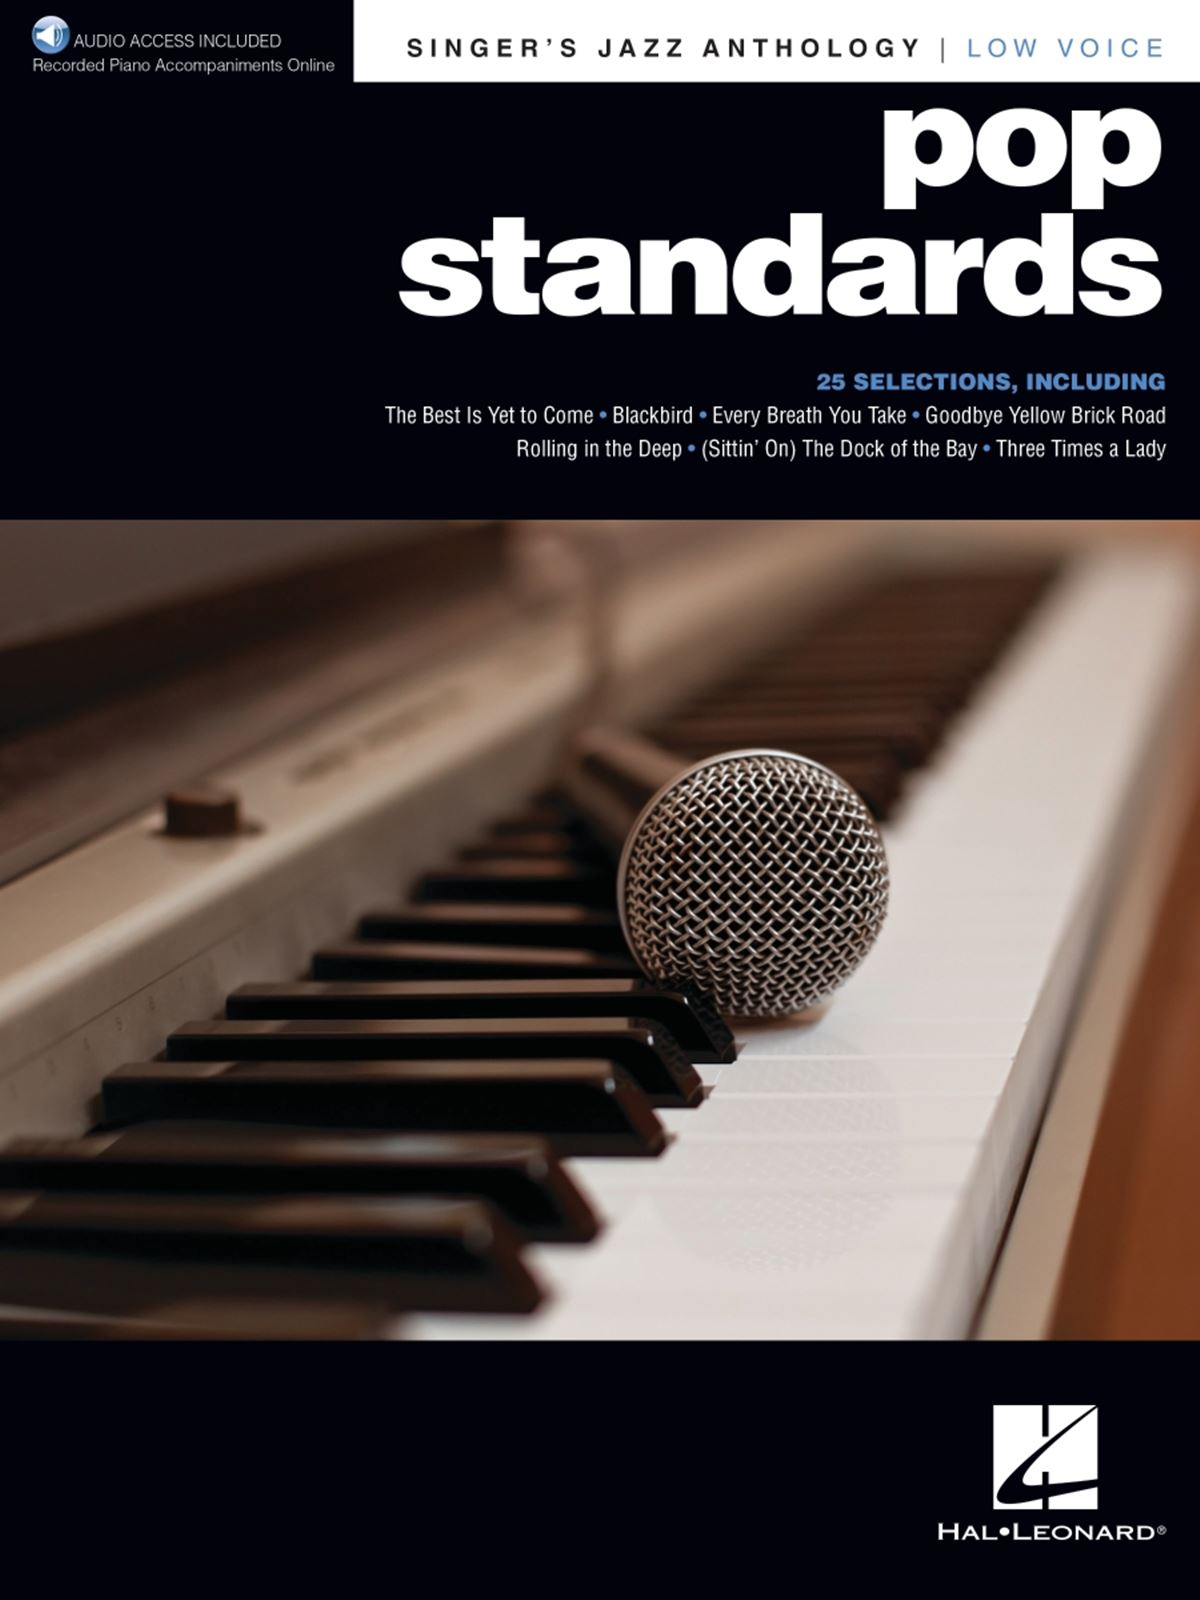 Pop Standards - Singer's Jazz Anthology Low Voice: Vocal Solo: Mixed Songbook